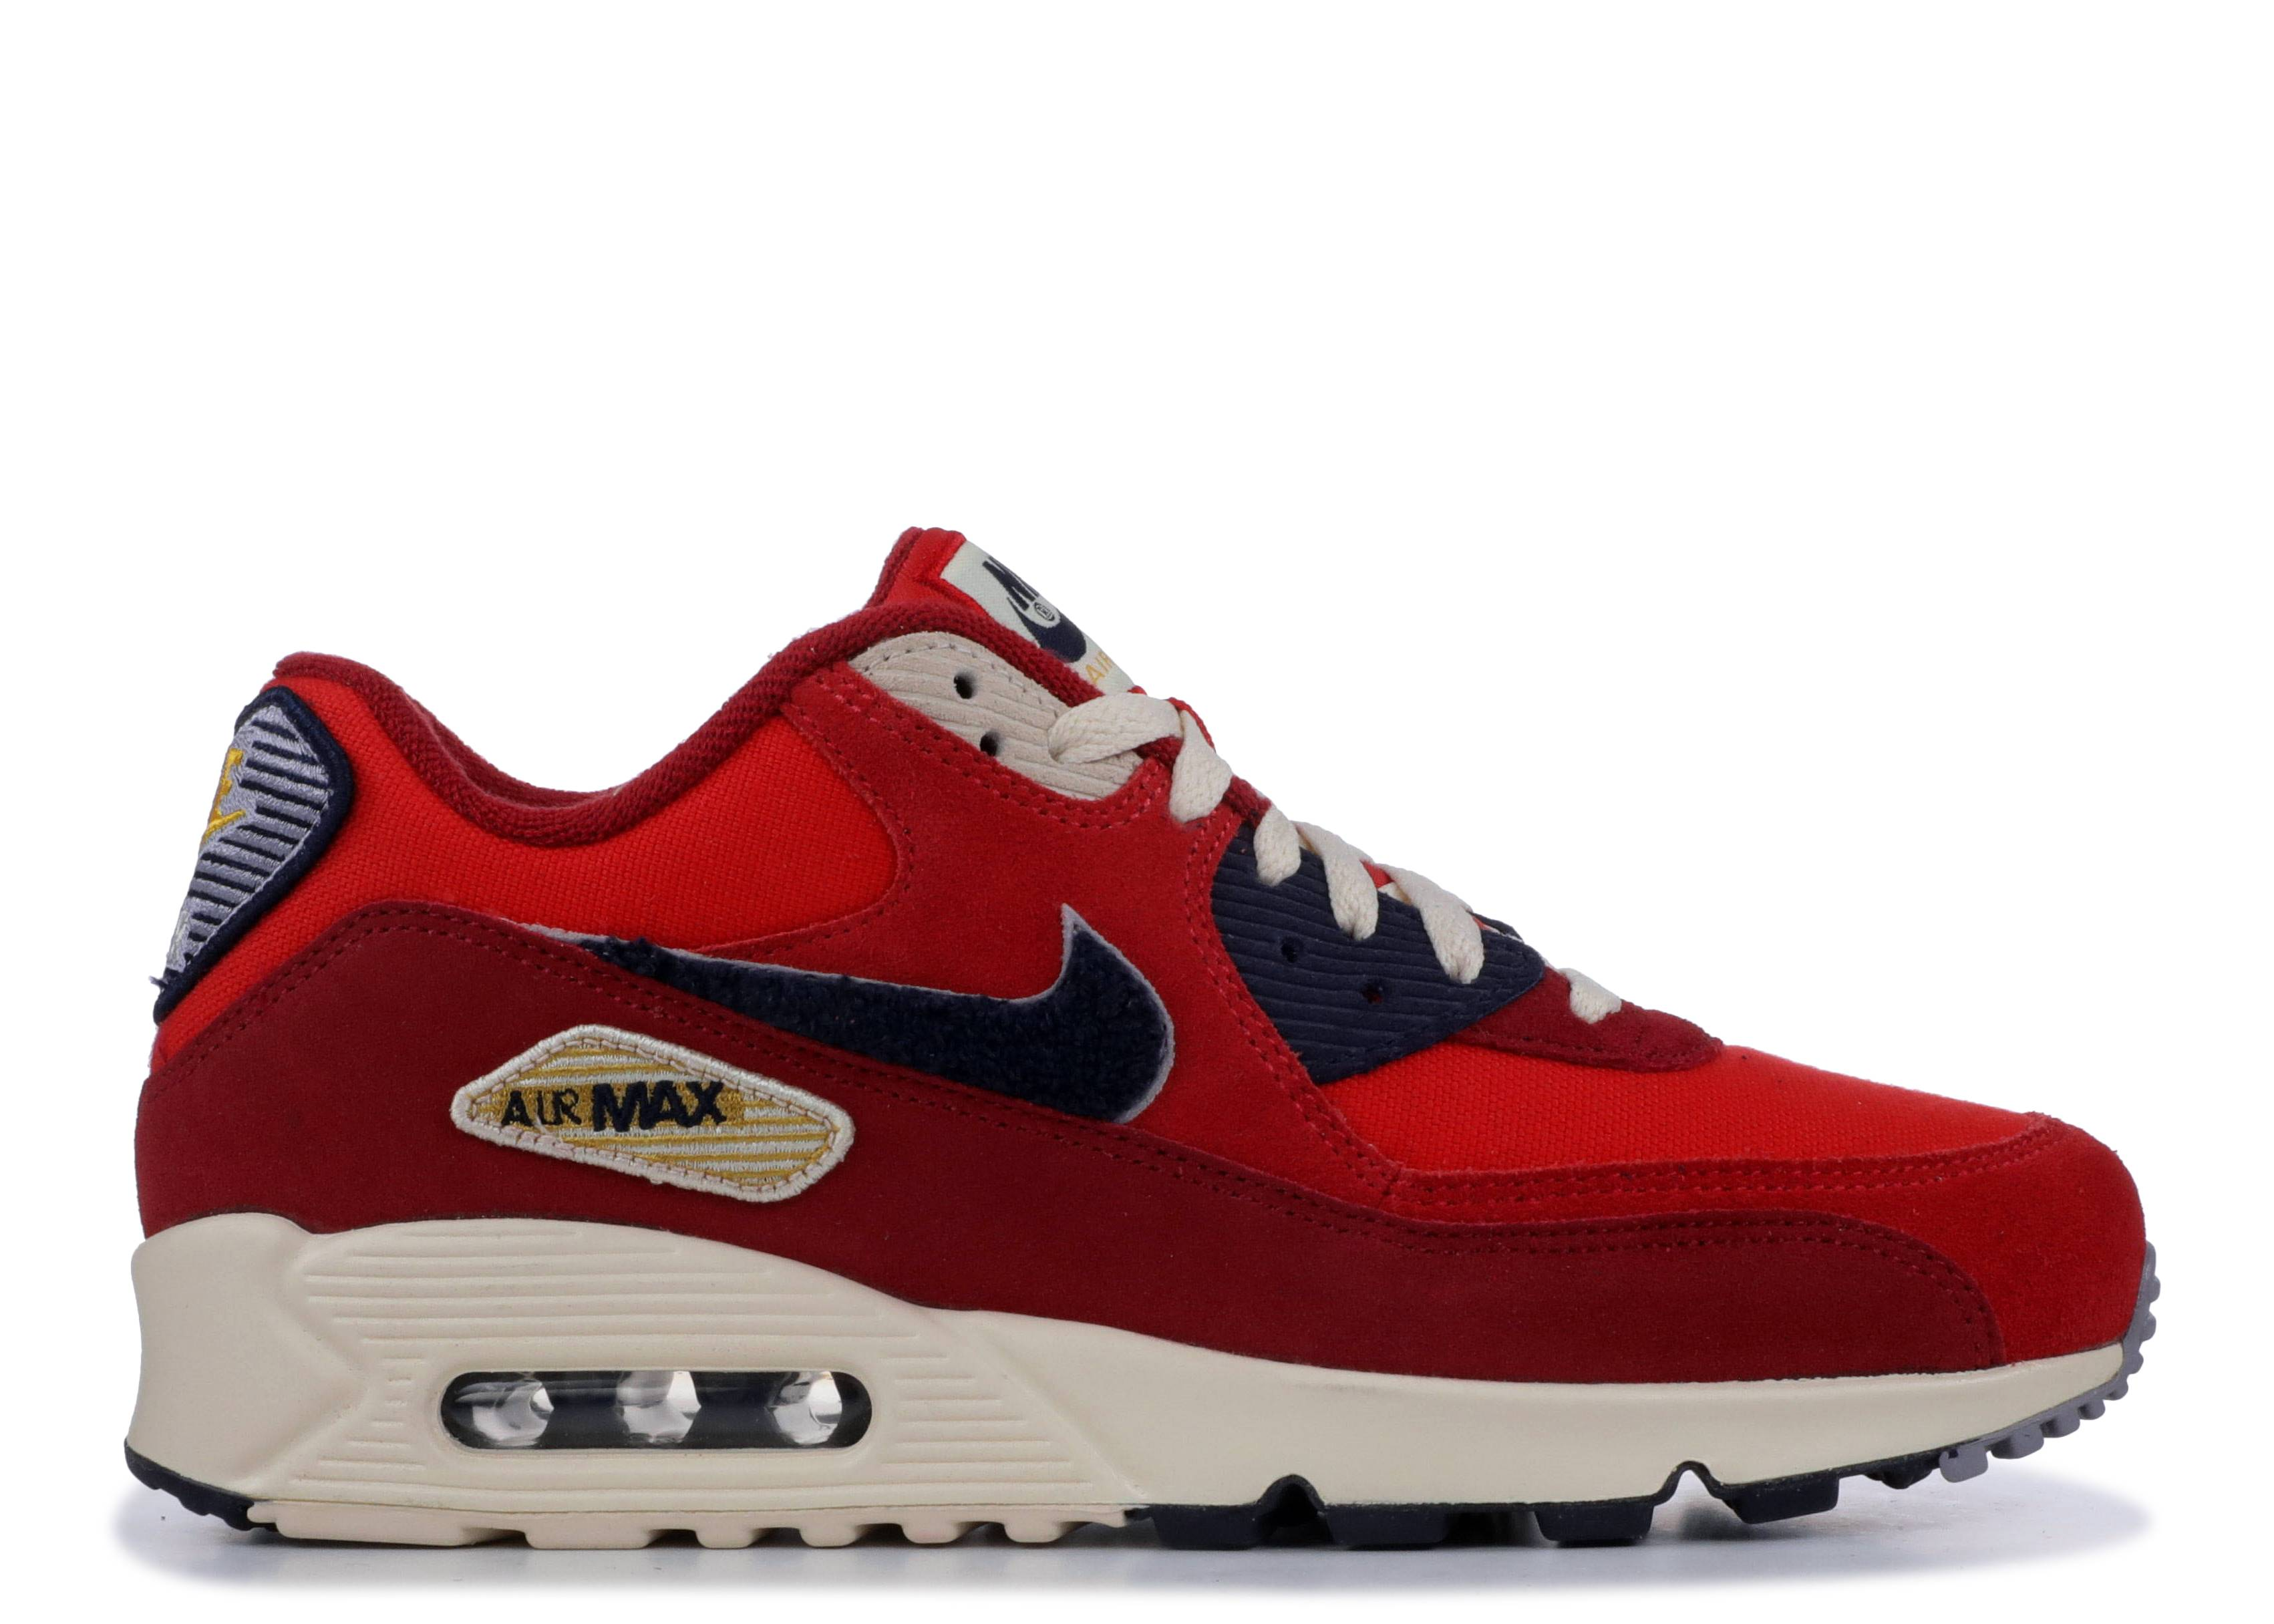 the latest 81afc 5b96a Nike Air Max 90 Premium - Nike - 858954 600 - university red ...